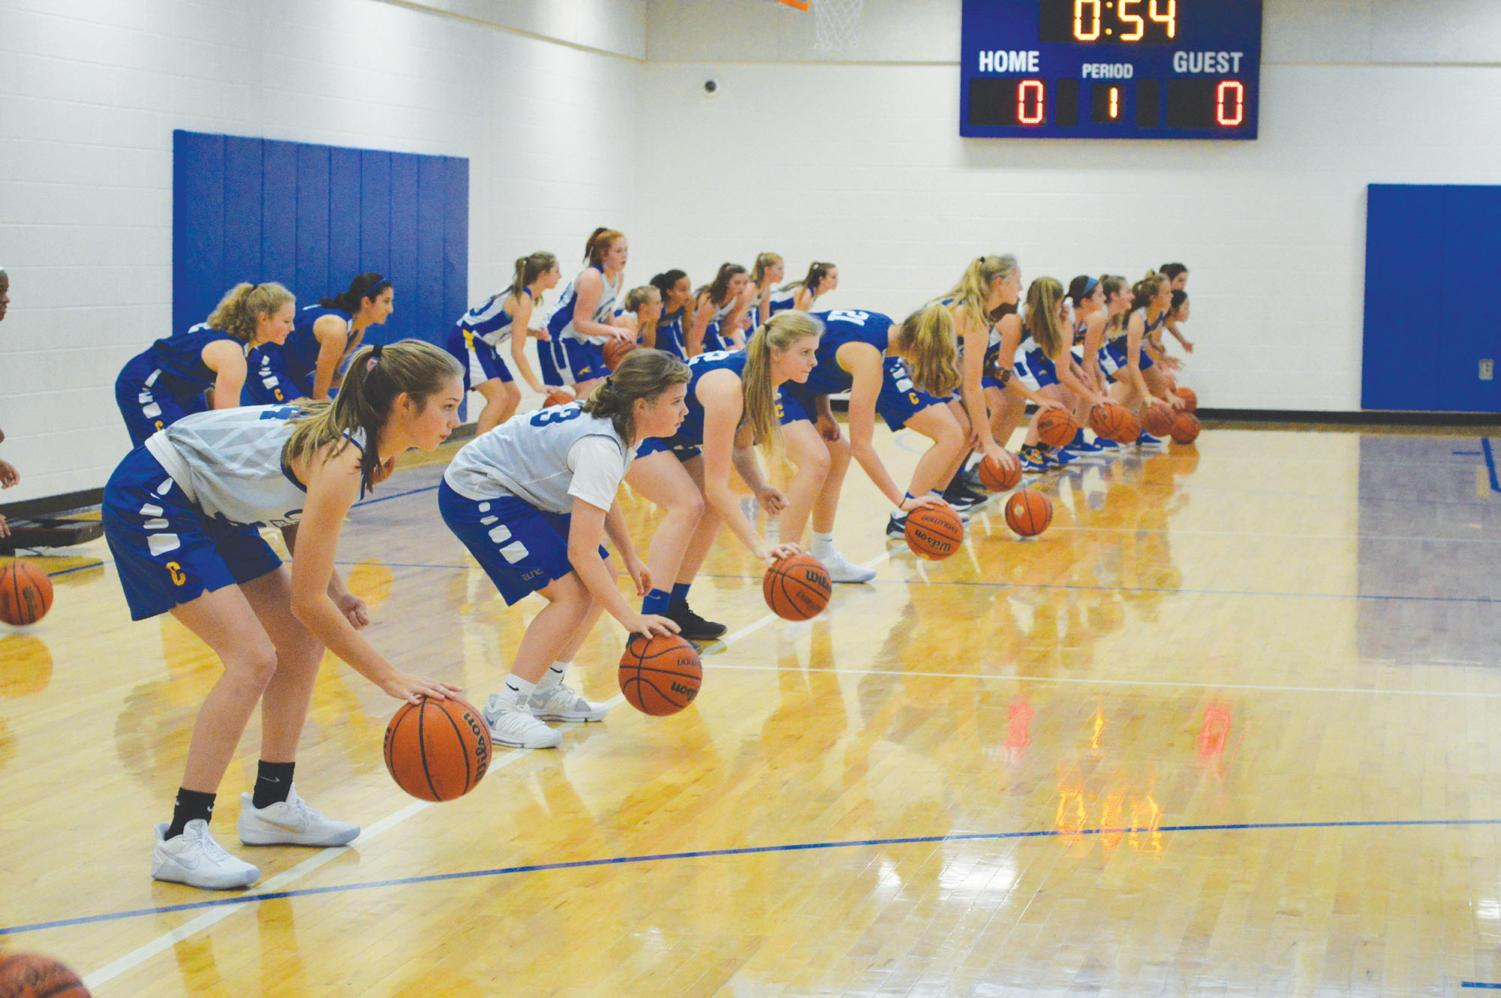 The CHS women's basketball team warms up for practice as their season begins to pick up. This year the team will face one of the toughest schedules in the state.